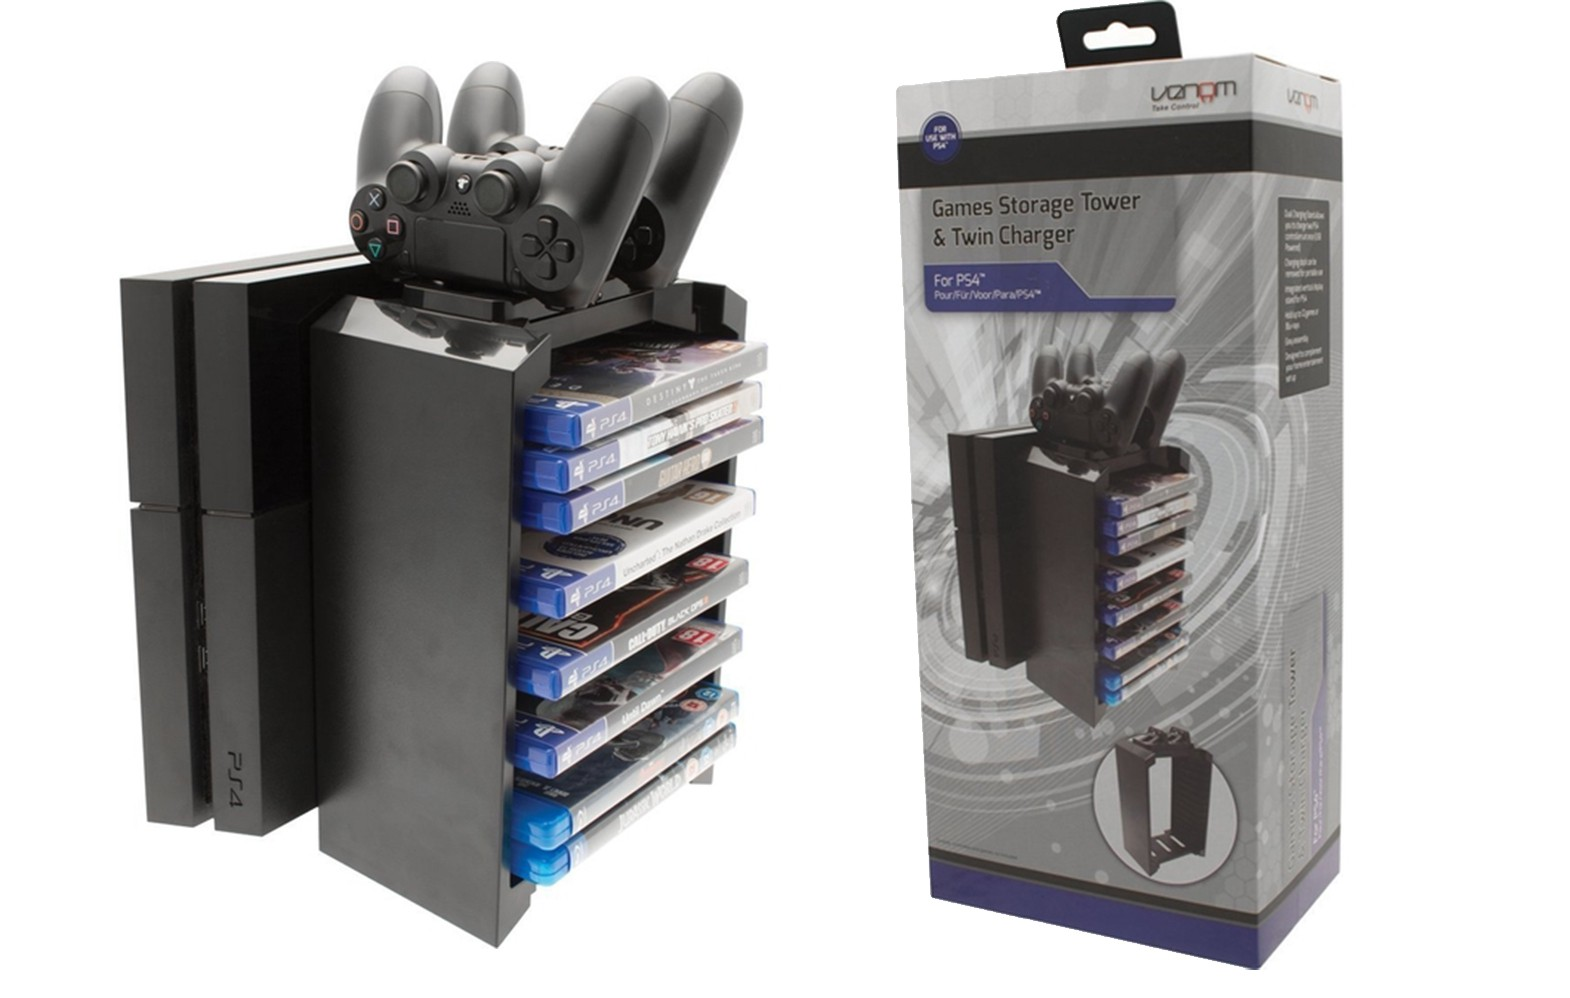 Venom 2 in 1 Games Storage Tower & Twin Charge For PS4